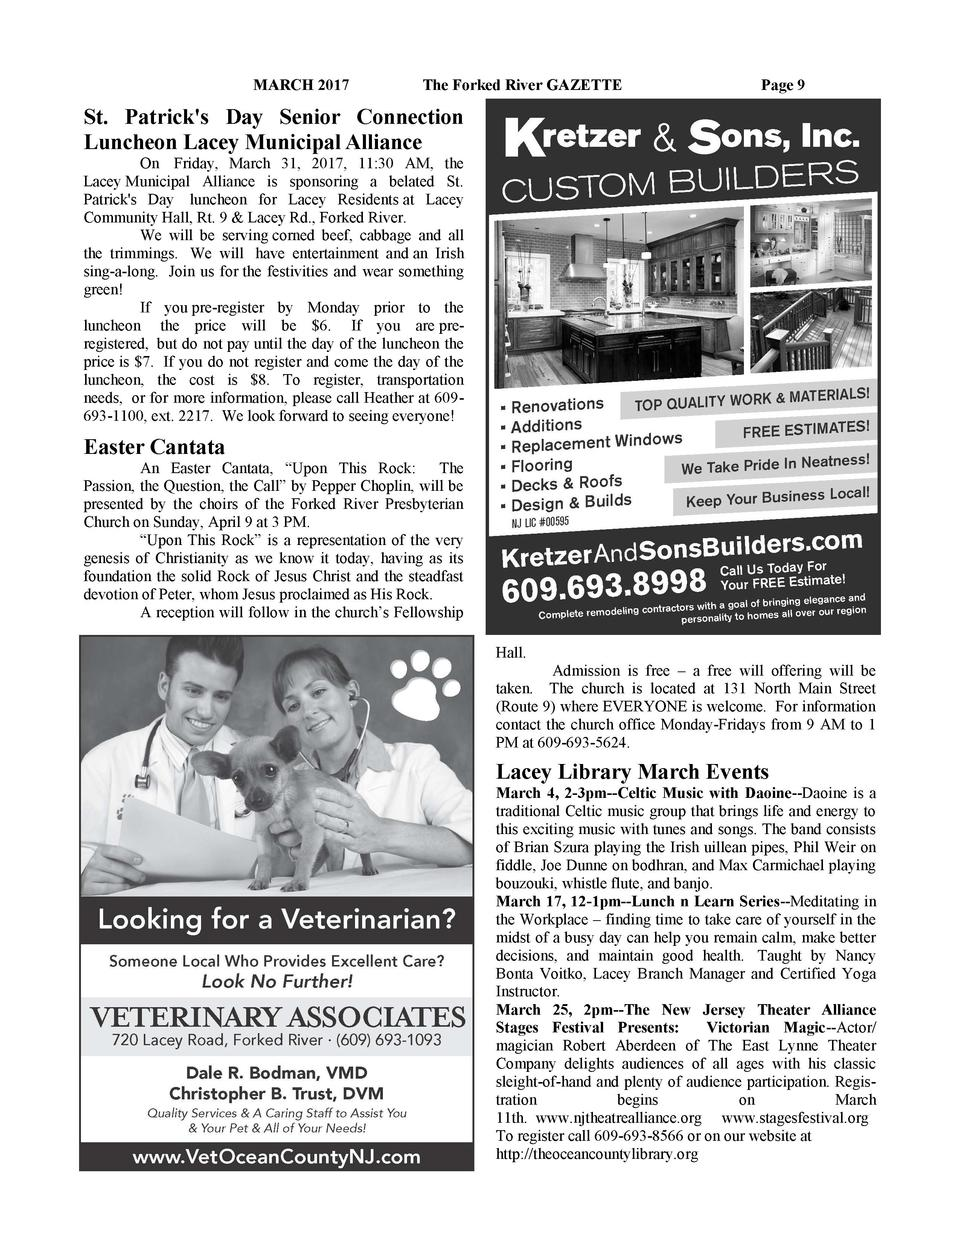 MARCH 2017  The Forked River GAZETTE  Page 9  St. Patrick s Day Senior Connection Luncheon Lacey Municipal Alliance On Fri...